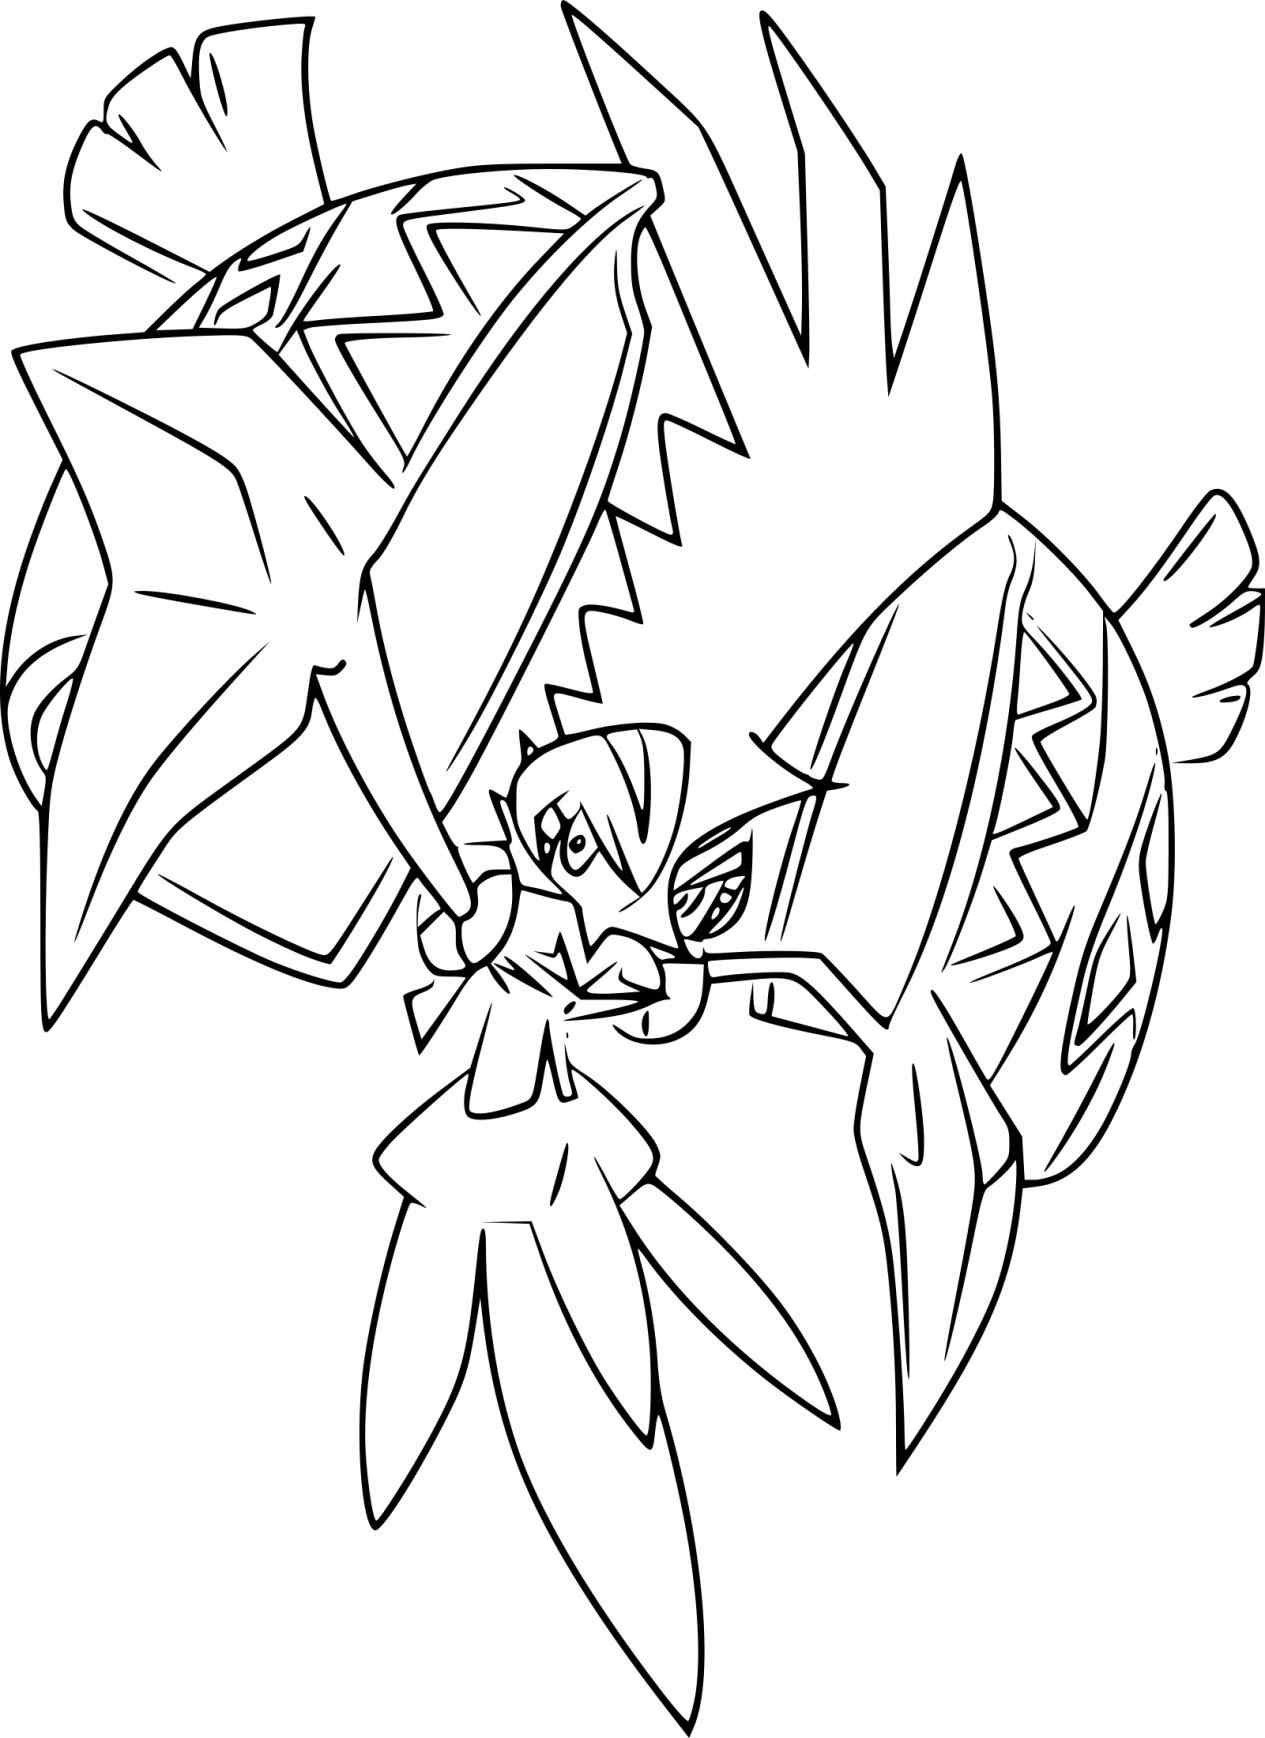 Pokemon Coloring Moon Pokemon Coloring Pages Pokemon Coloring